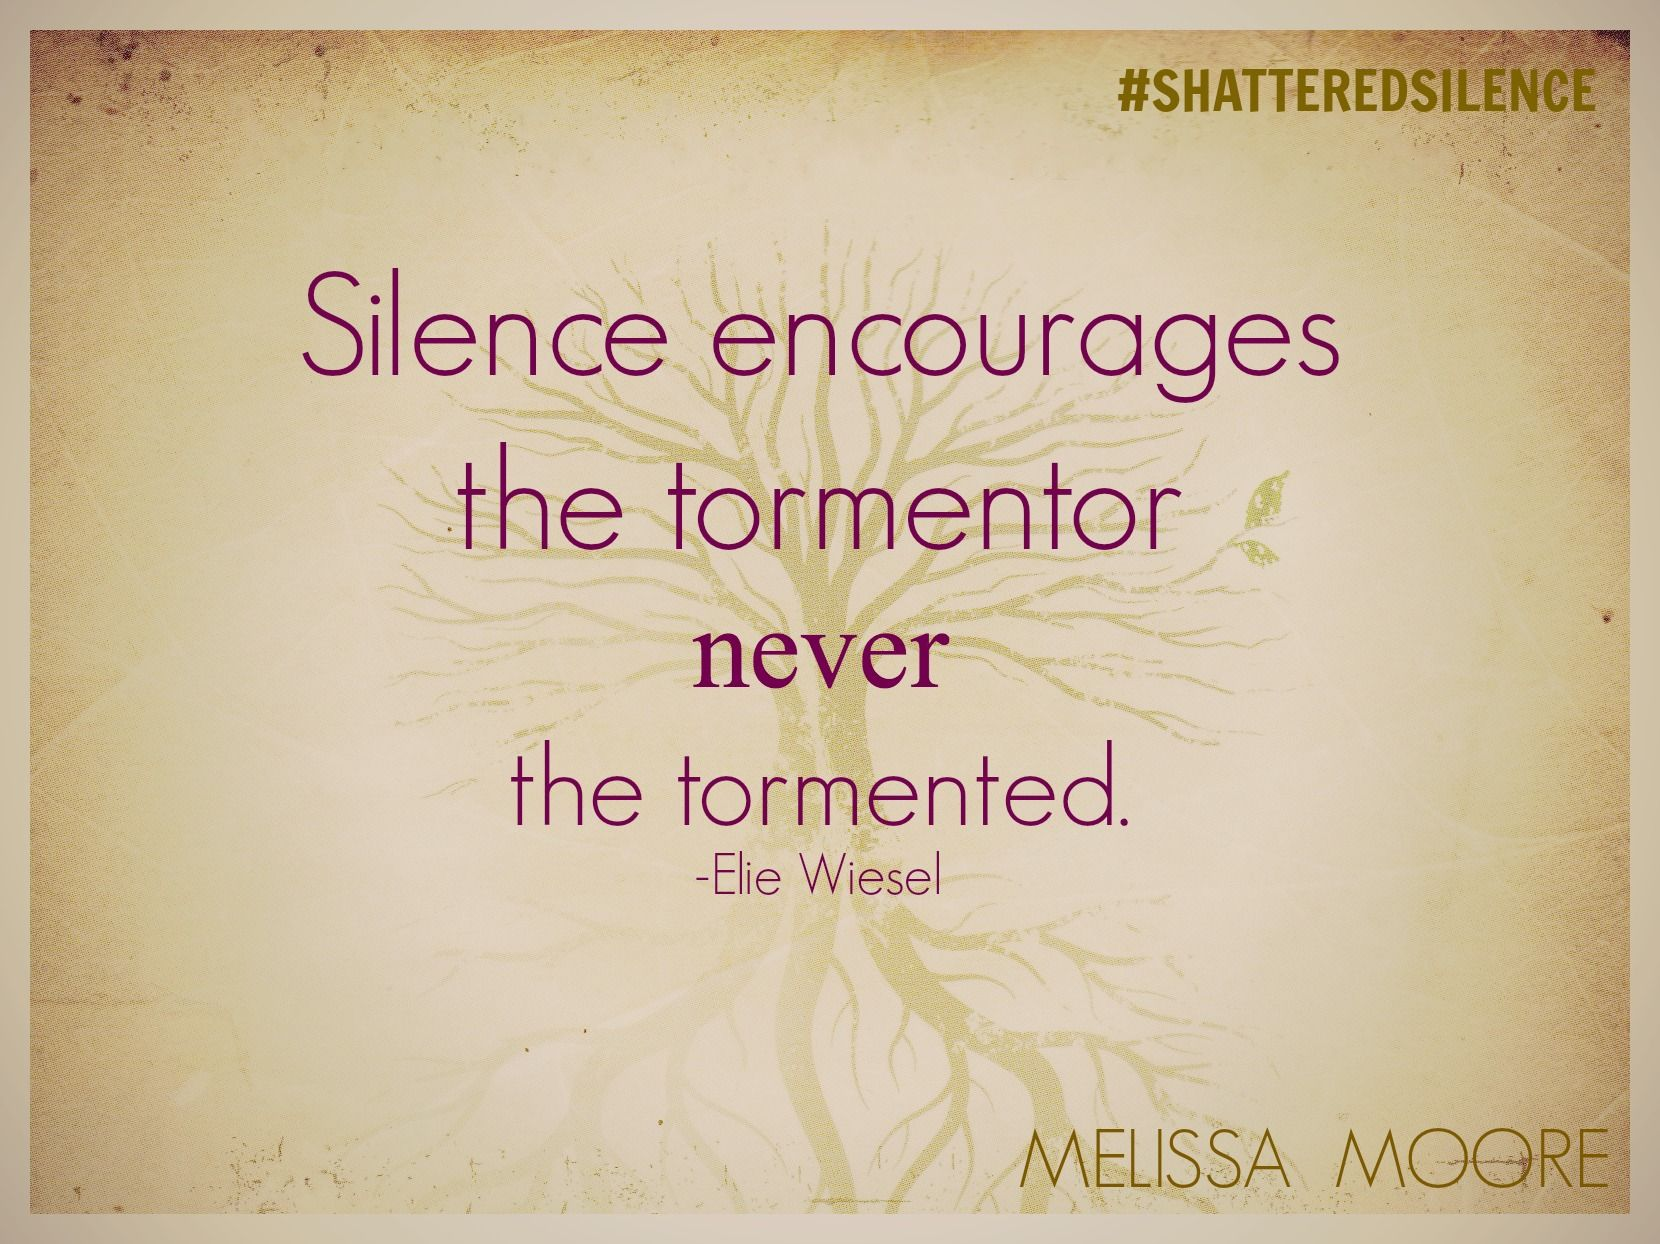 Silence encourages the tormentor, never the tormented. #shatteredsilence #stopdomesticviolence #domesticviolence